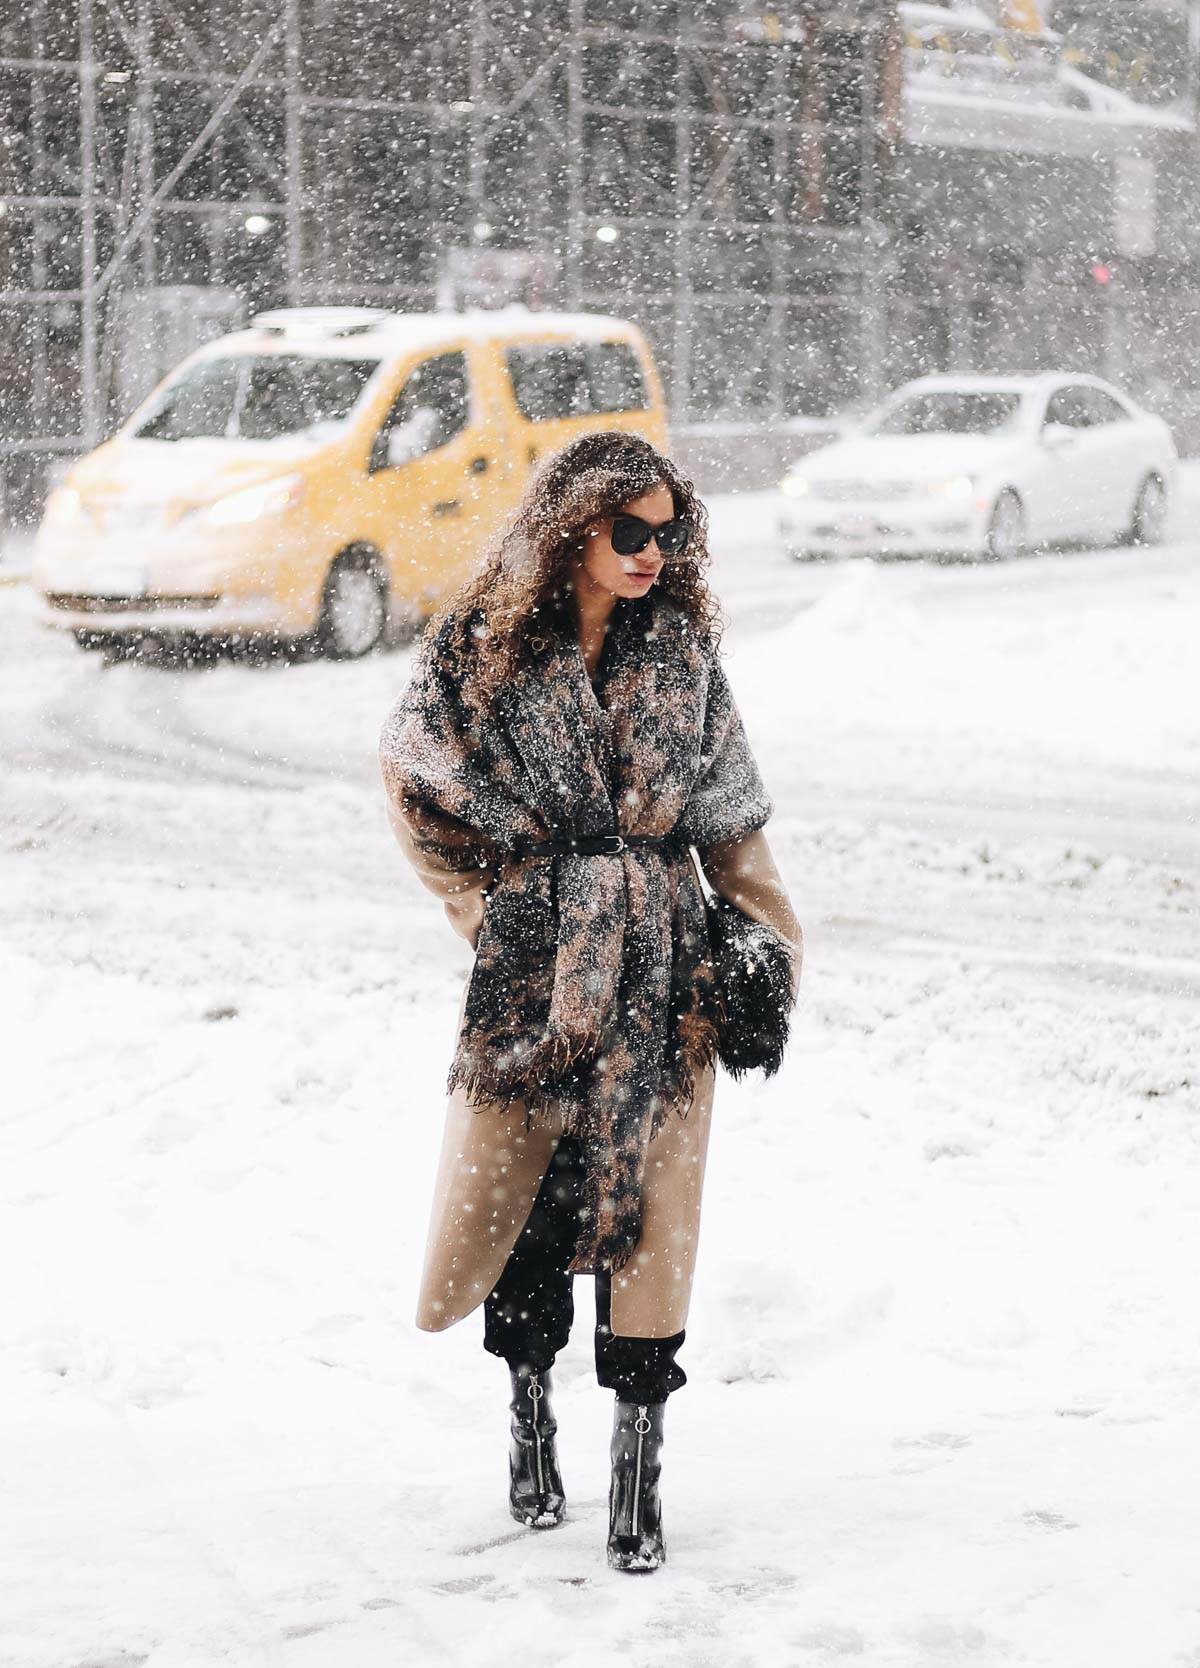 b98f01c4a Traveling in the Winter? Here's How to Look Chic and Stay Warm! - MY ...